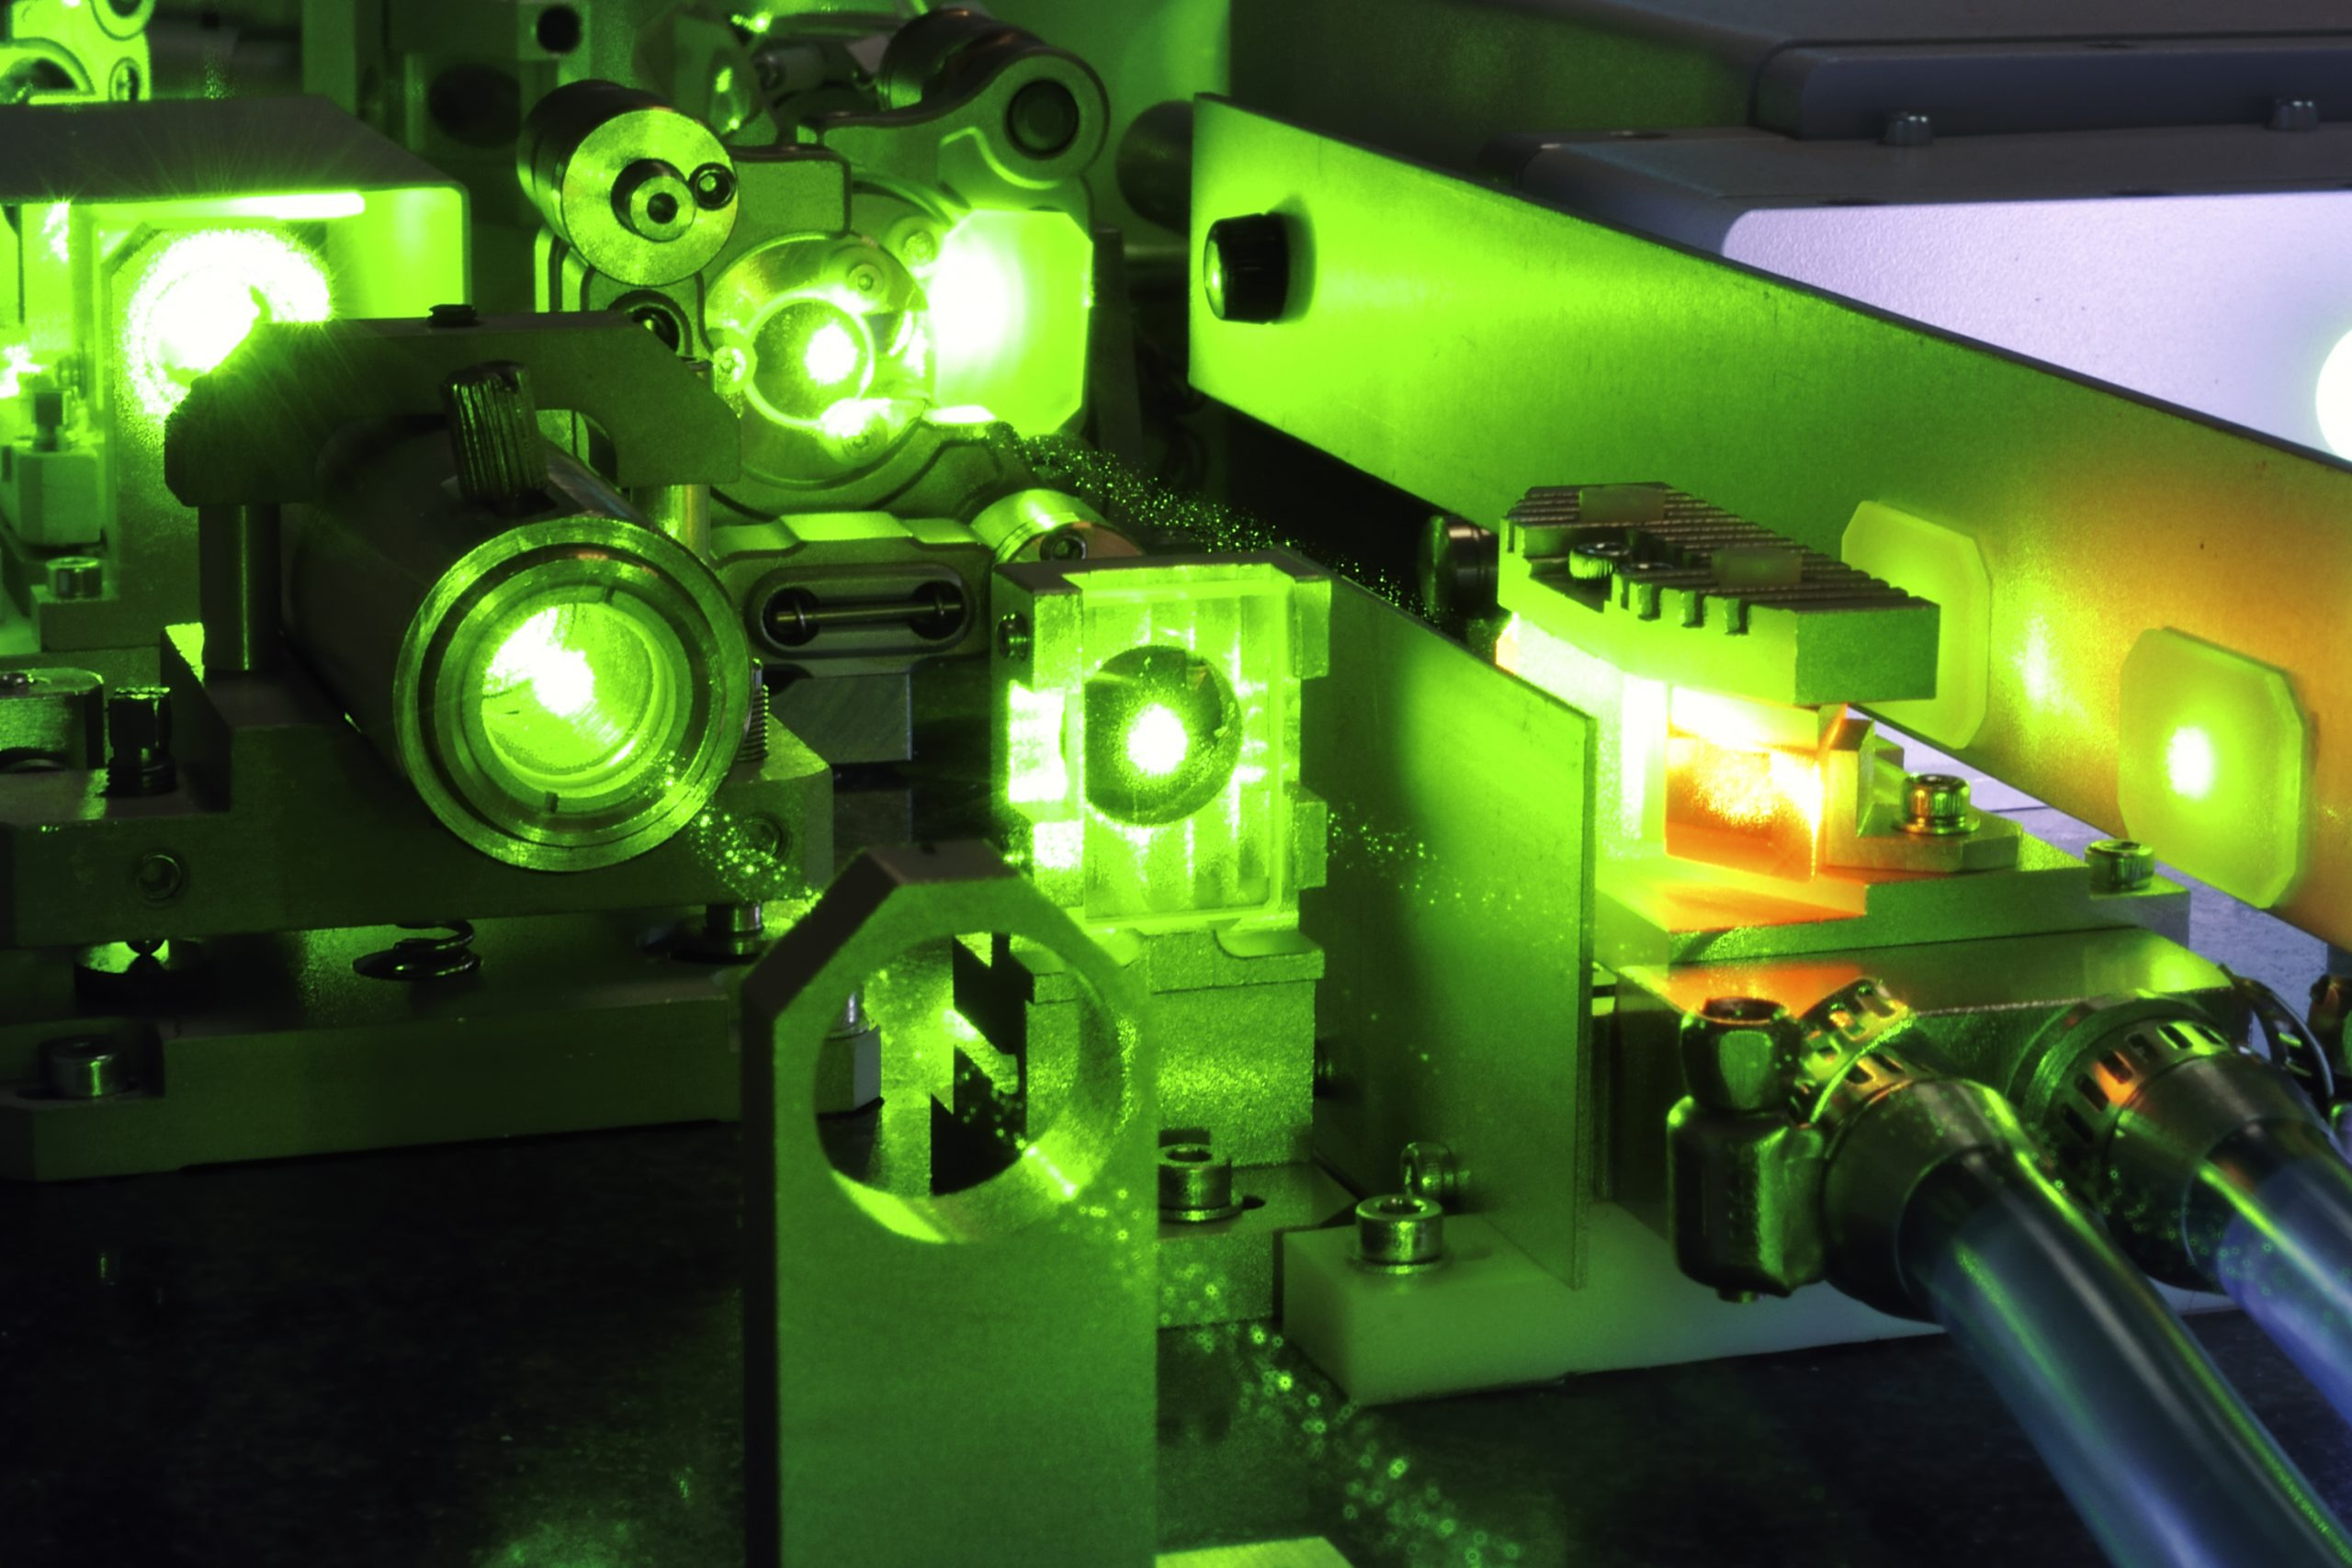 powerful laser - Research News Scotland